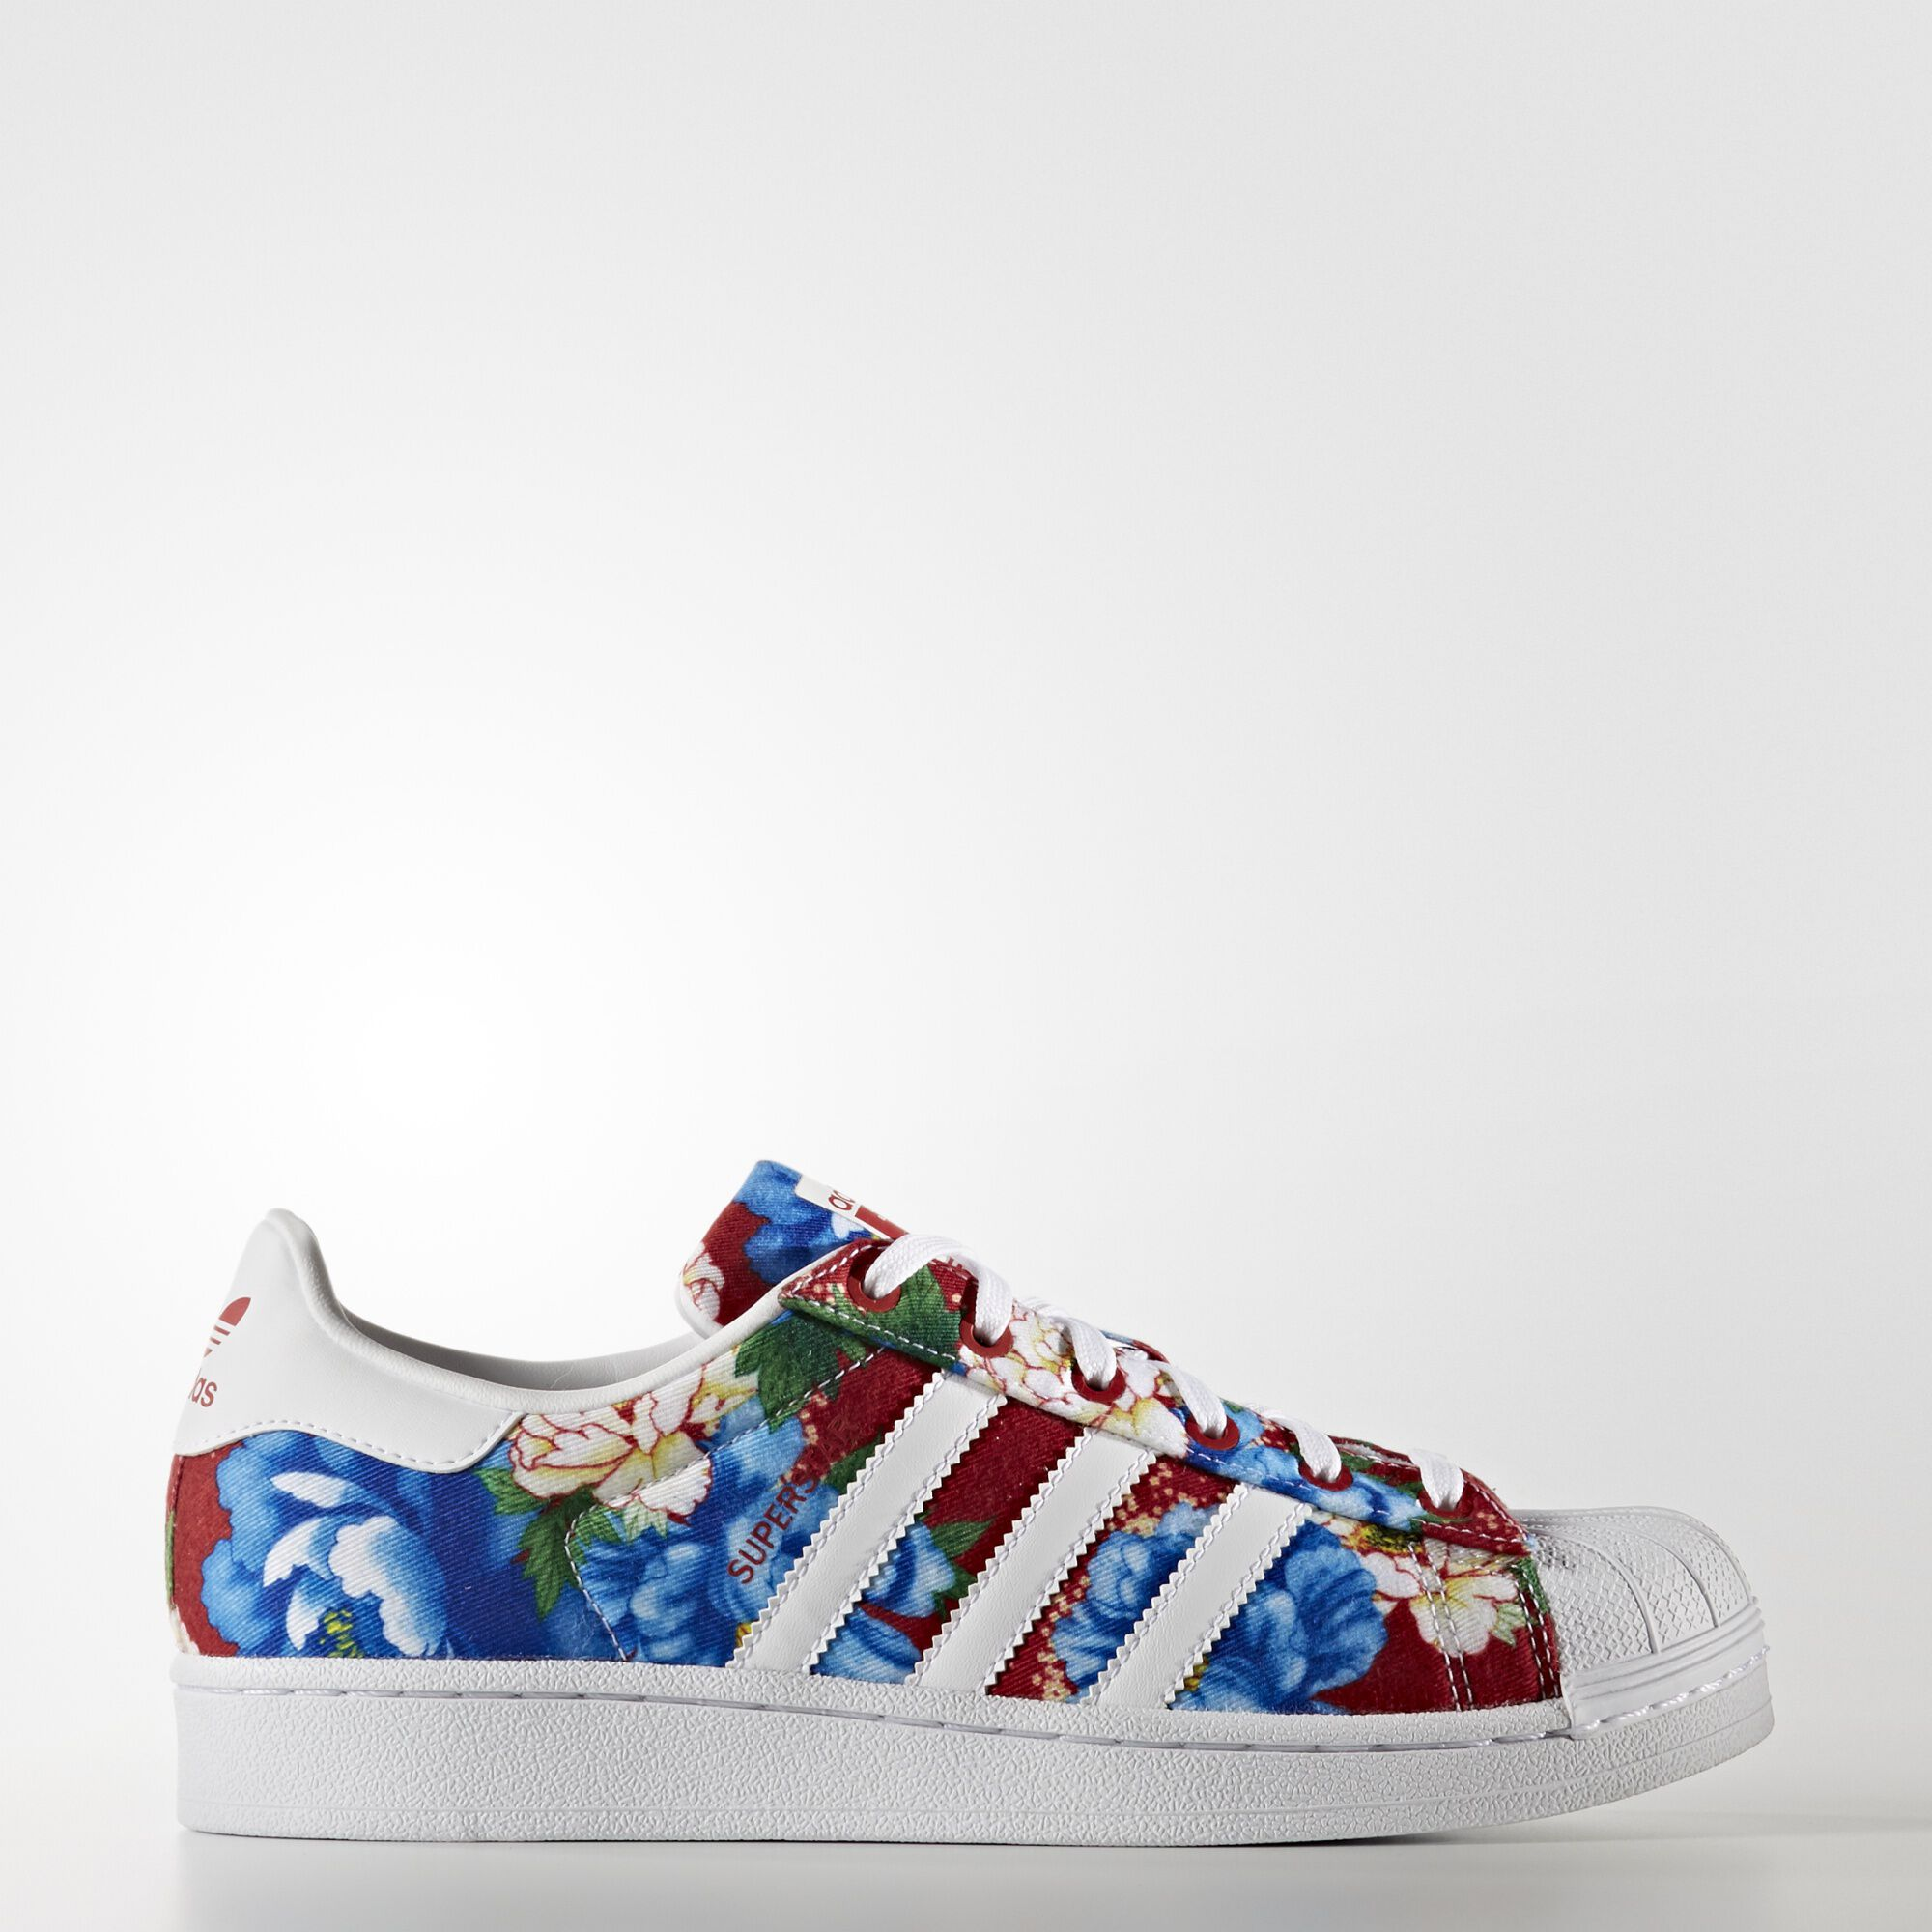 adidas shoes superstar colors. adidas superstar shoes floral colors